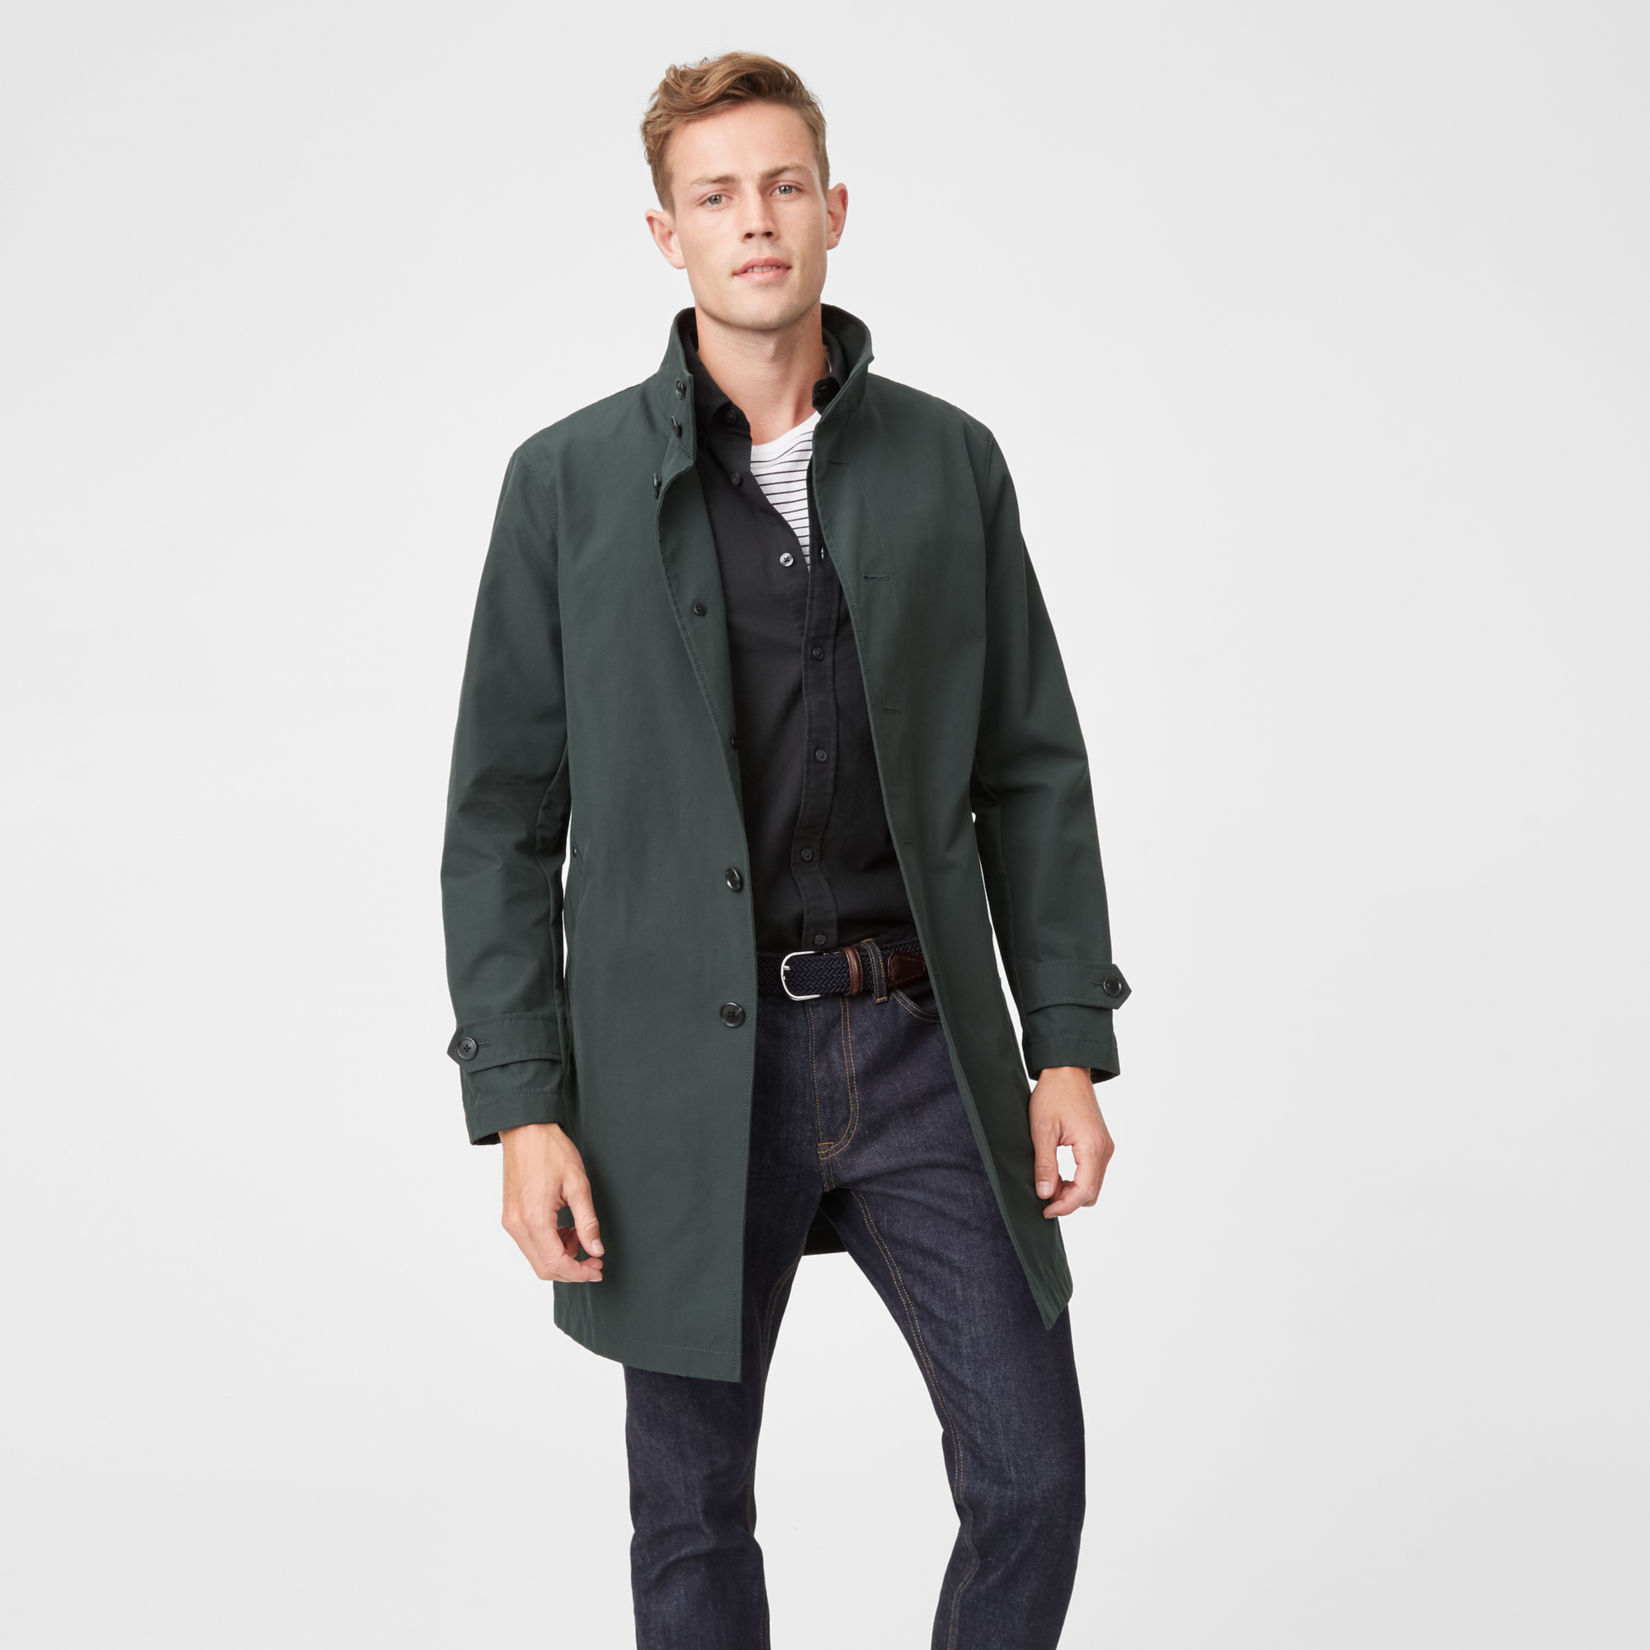 Men | Outerwear - Bomber Jackets, Topcoats, Wool Coats and More ...